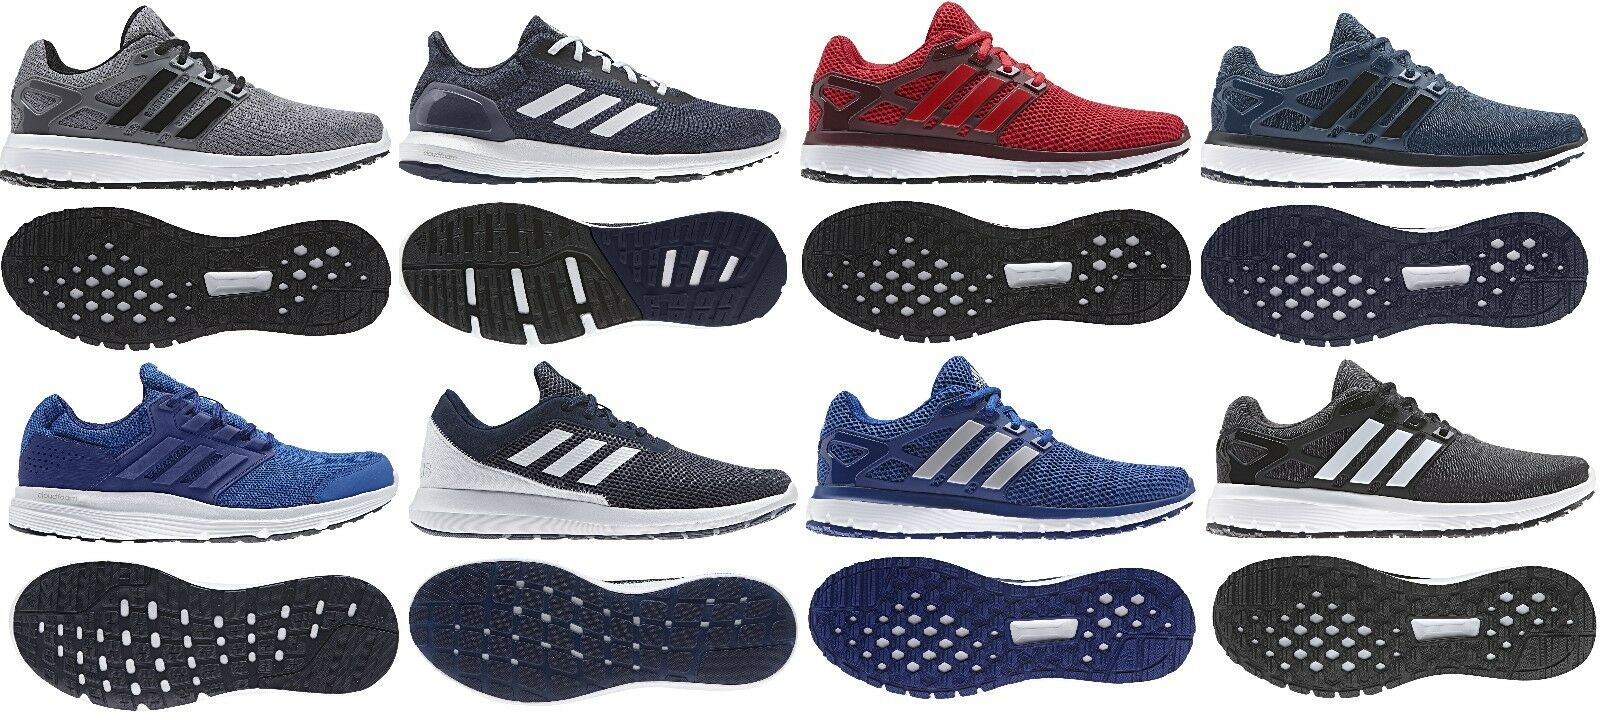 ZAPATOS  ADIDAS CORRIENDO  & ELEMENT &  ENERGY 203767